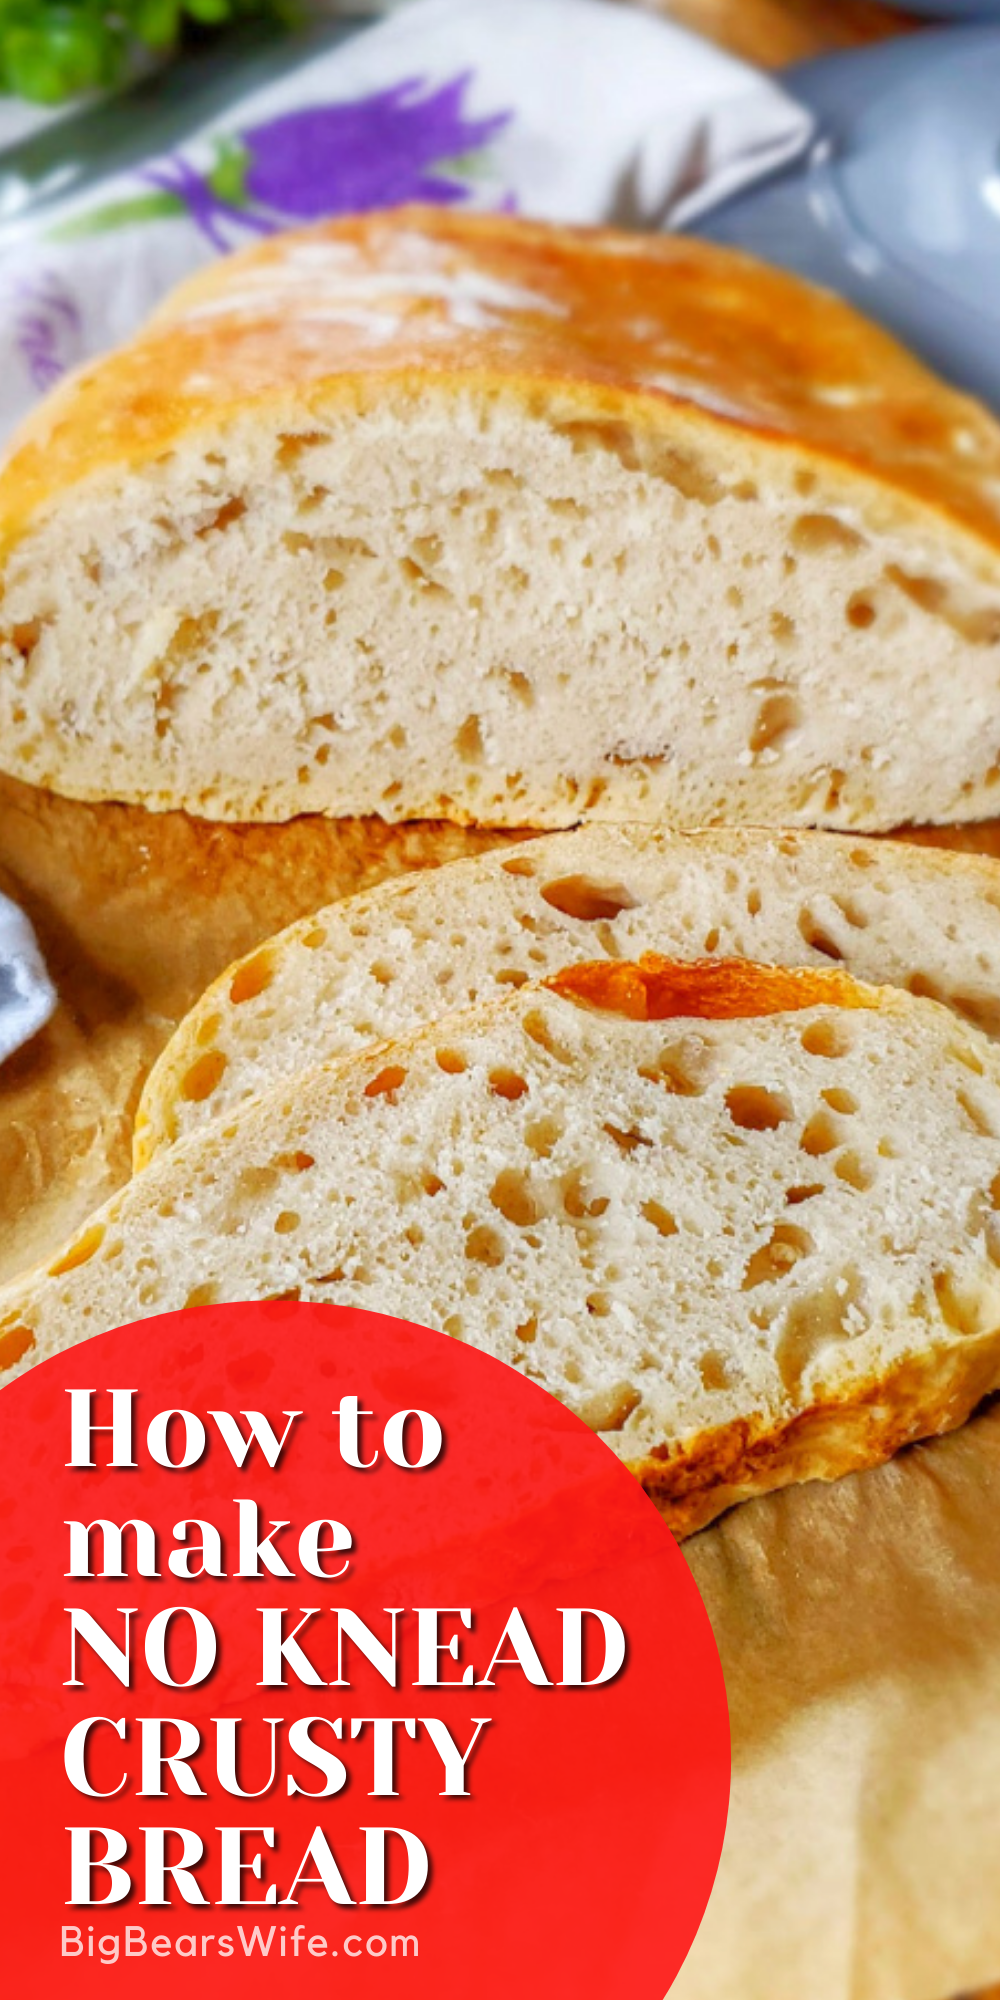 Ready to learn how to make the easiest No Knead Crusty Bread at home? I've got step by step photos and directions to teach you how to bake it in your own kitchen! via @bigbearswife